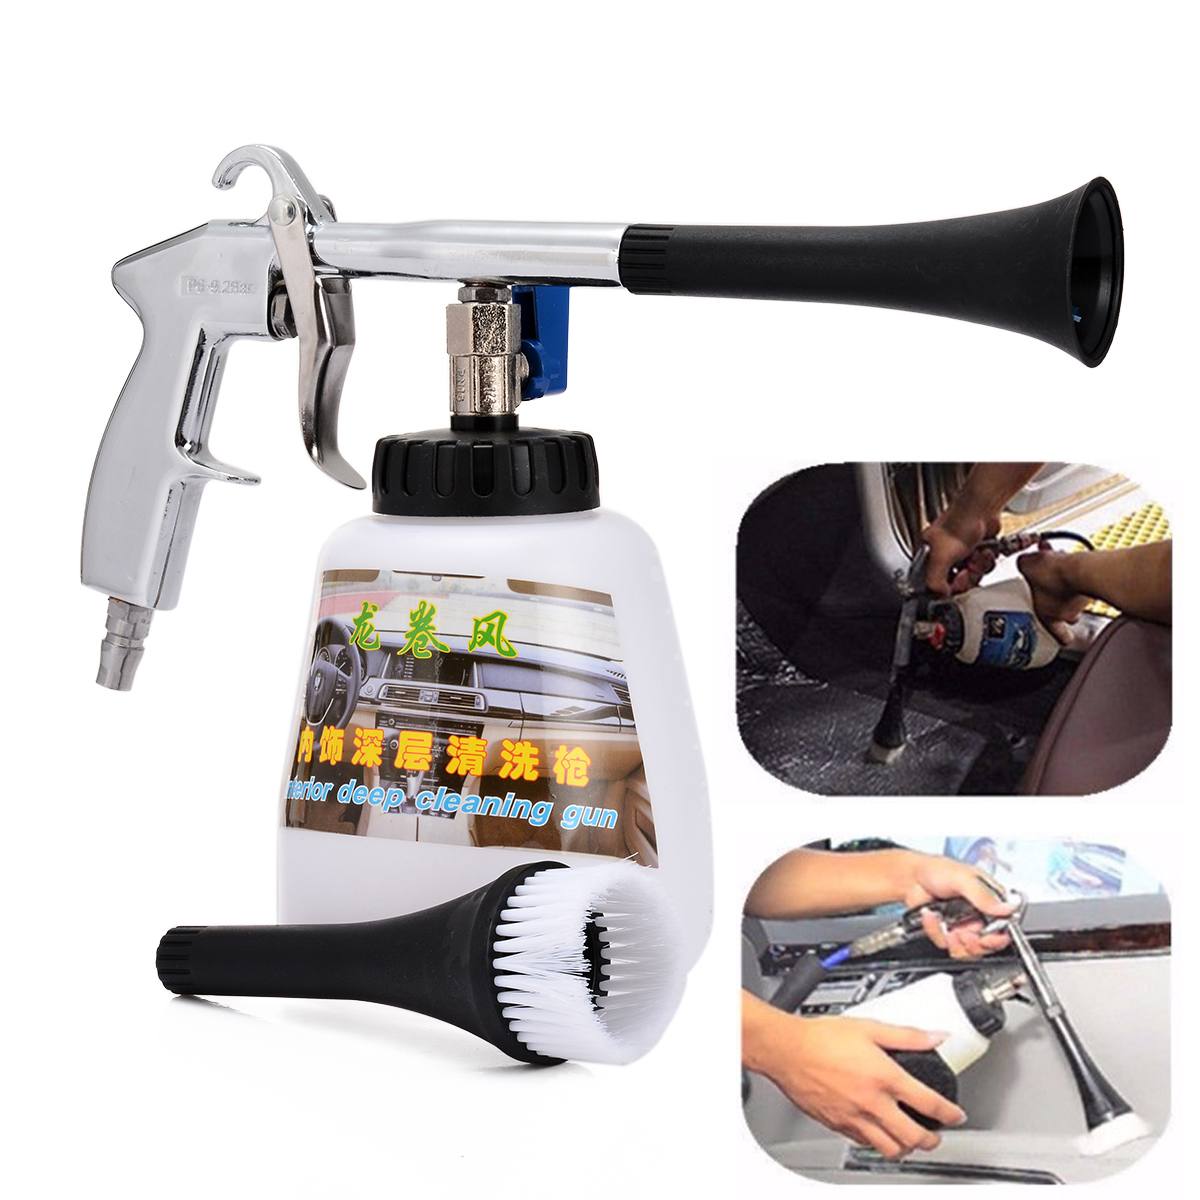 1 set High Pressure Tornado Car Cleaning Tool Air Pulse Interior Exterior Cleaning Tool Mayitr Spray Gun 225*130mm With Brush cleaning brush with spray